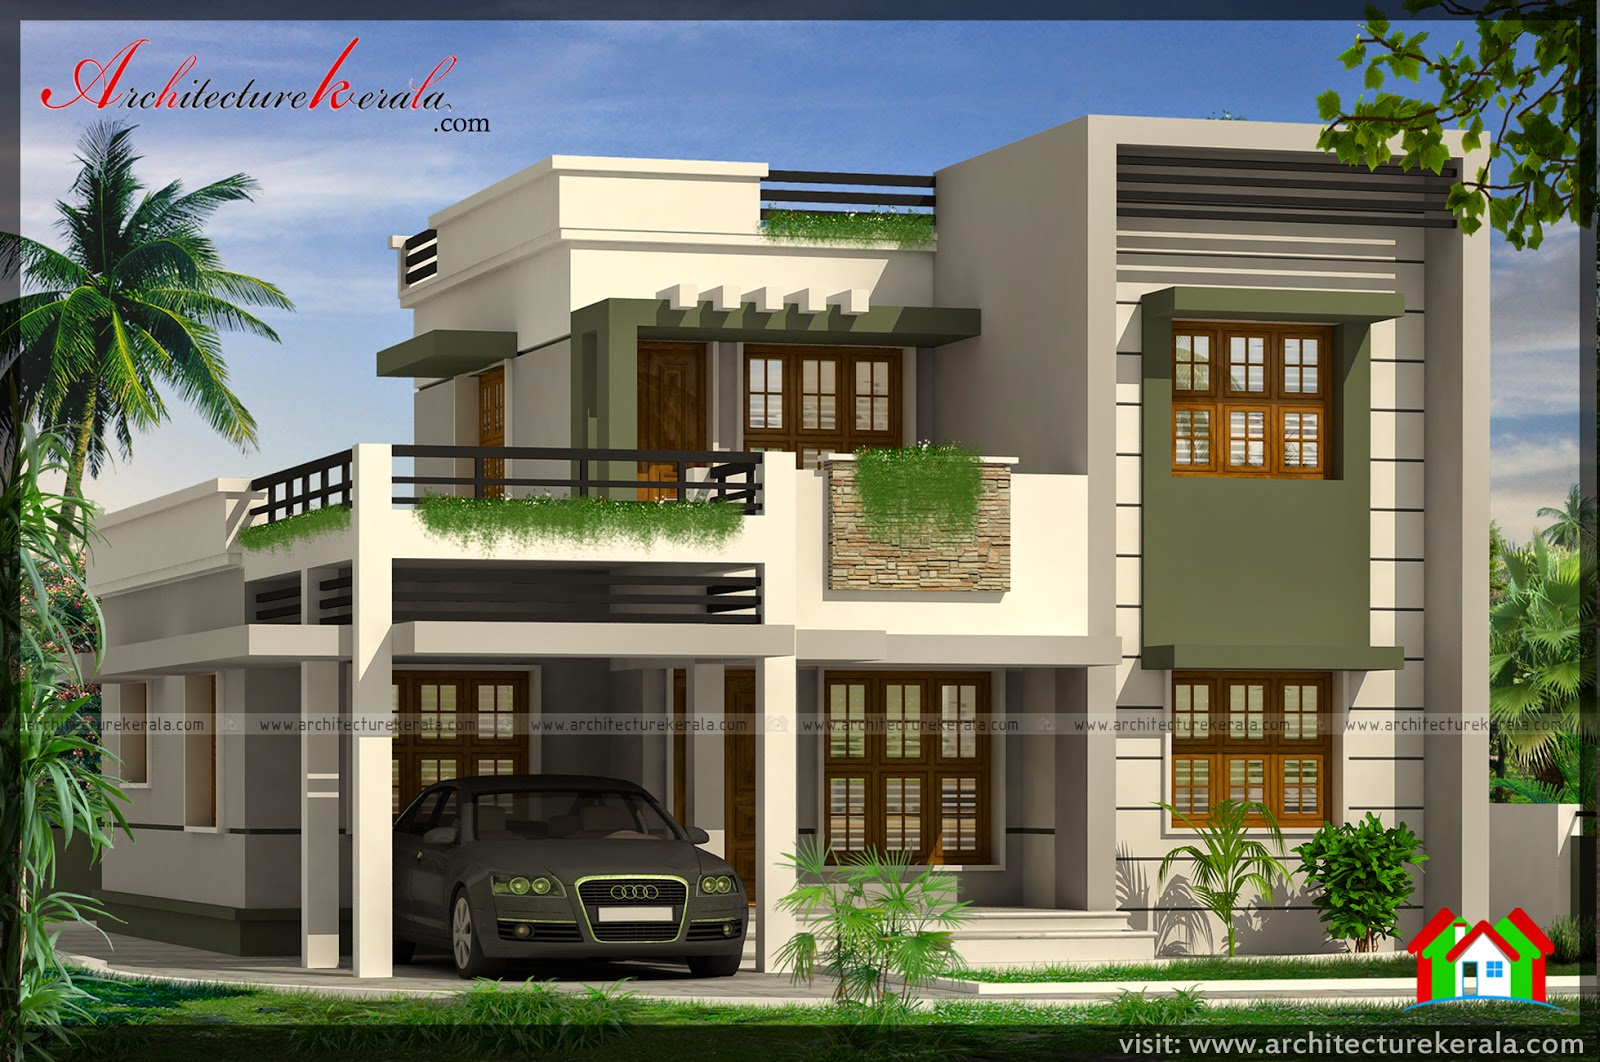 house plans 3 bedroom townhouse for html with Below 2000 Sqft House Fourbedroom on A25aab504a569d65 Flat Roof Modern House Designs Narrow Flat Roof Houses Modern together with Double Storey House Plans With Balcony also 4c6873c4af230da7 Single Story Mediterranean House Plans Single Story Ranch House Plans additionally Beautiful Modern Home Exterior Design as well Pratto.